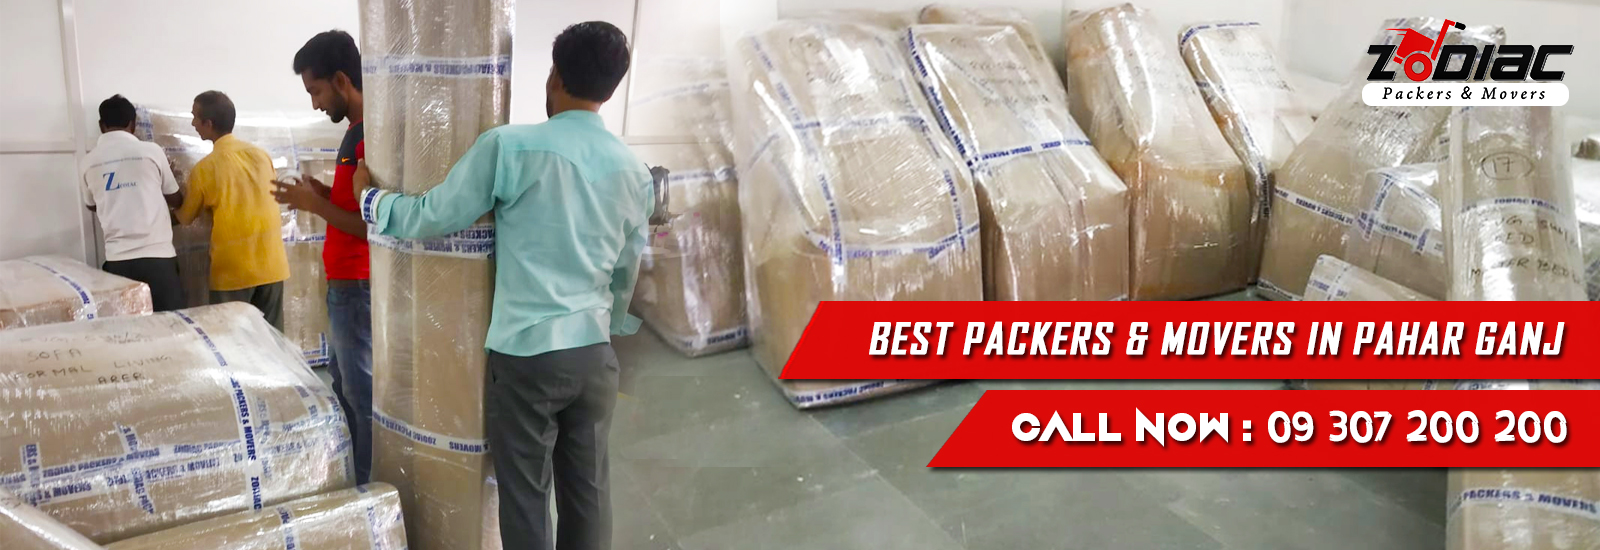 Packers and Movers in Pahar Ganj